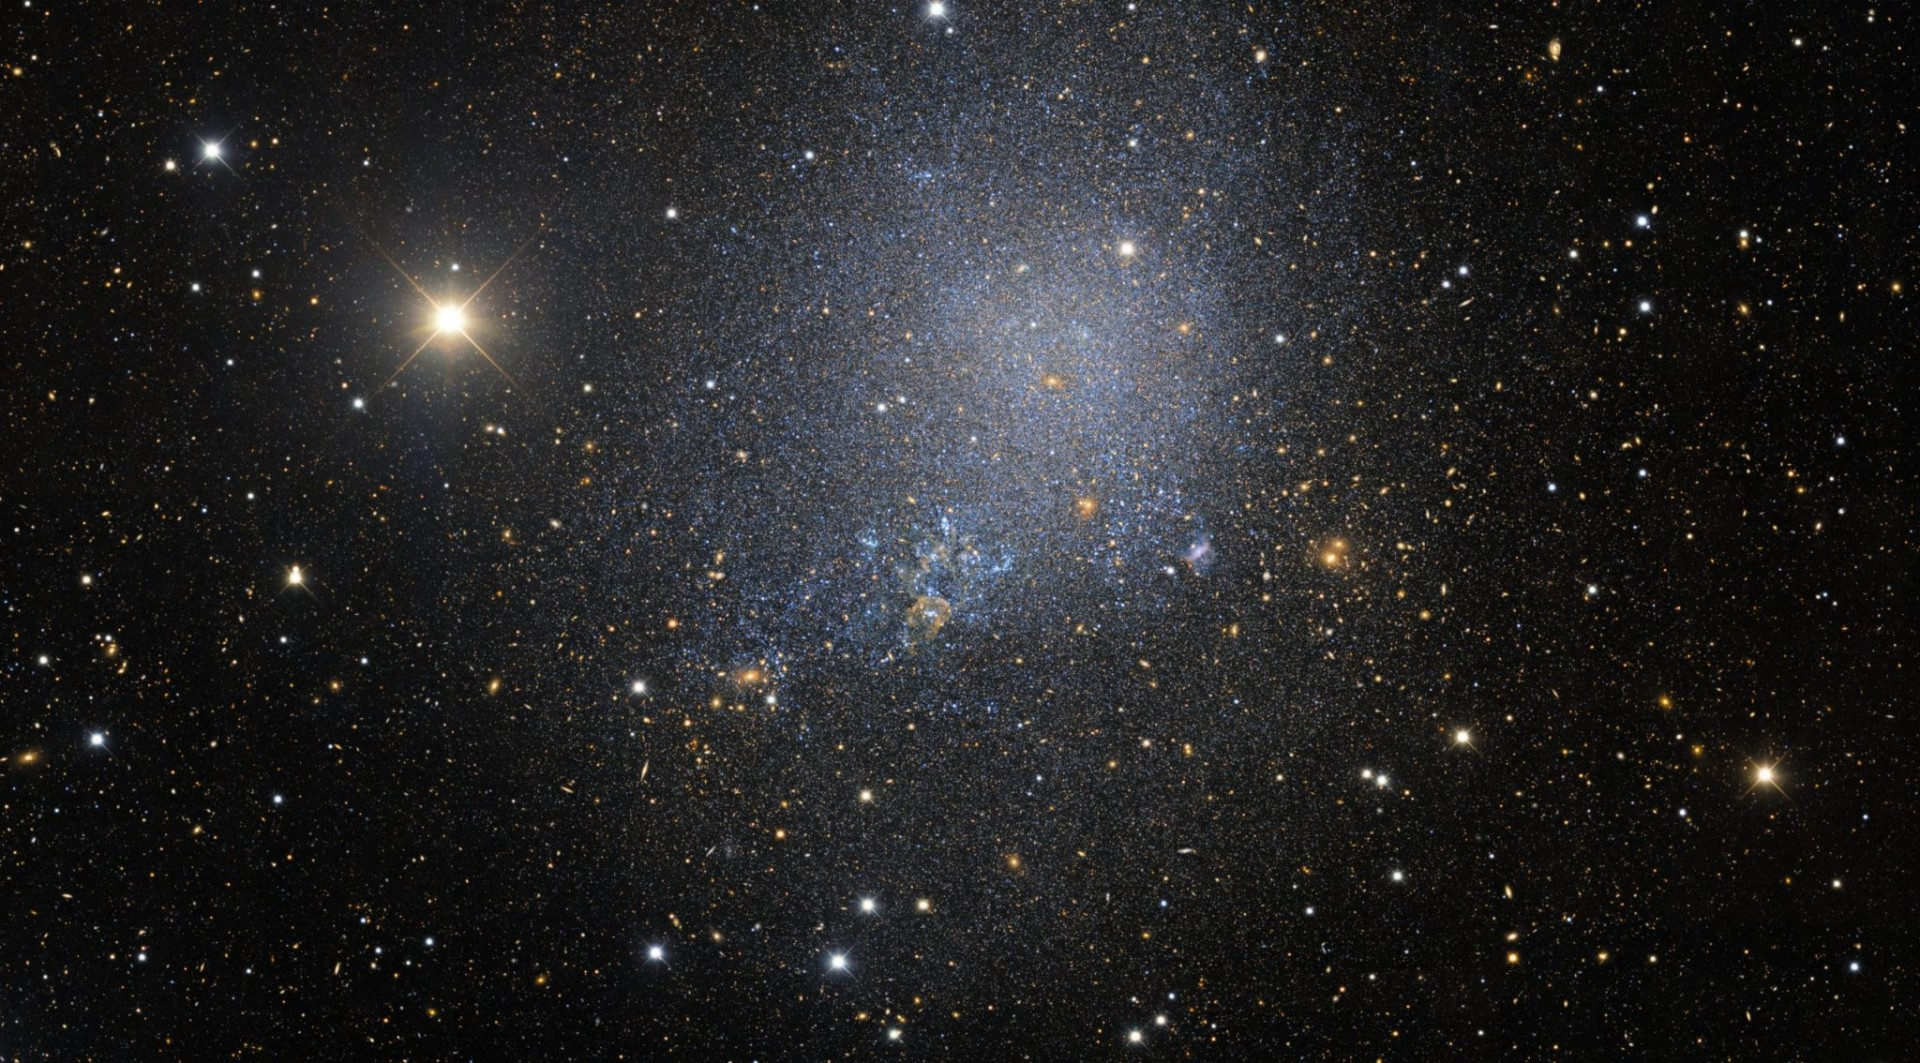 This irregular dwarf galaxy, named IC 1613, and discovered through the  Dark Energy Survey, contains some 100 million stars (bluish in this portrayal). It is a member of our Local Group of galaxy neighbors, a collection which also includes our Milky Way, the Andromeda spiral and the Magellanic clouds.